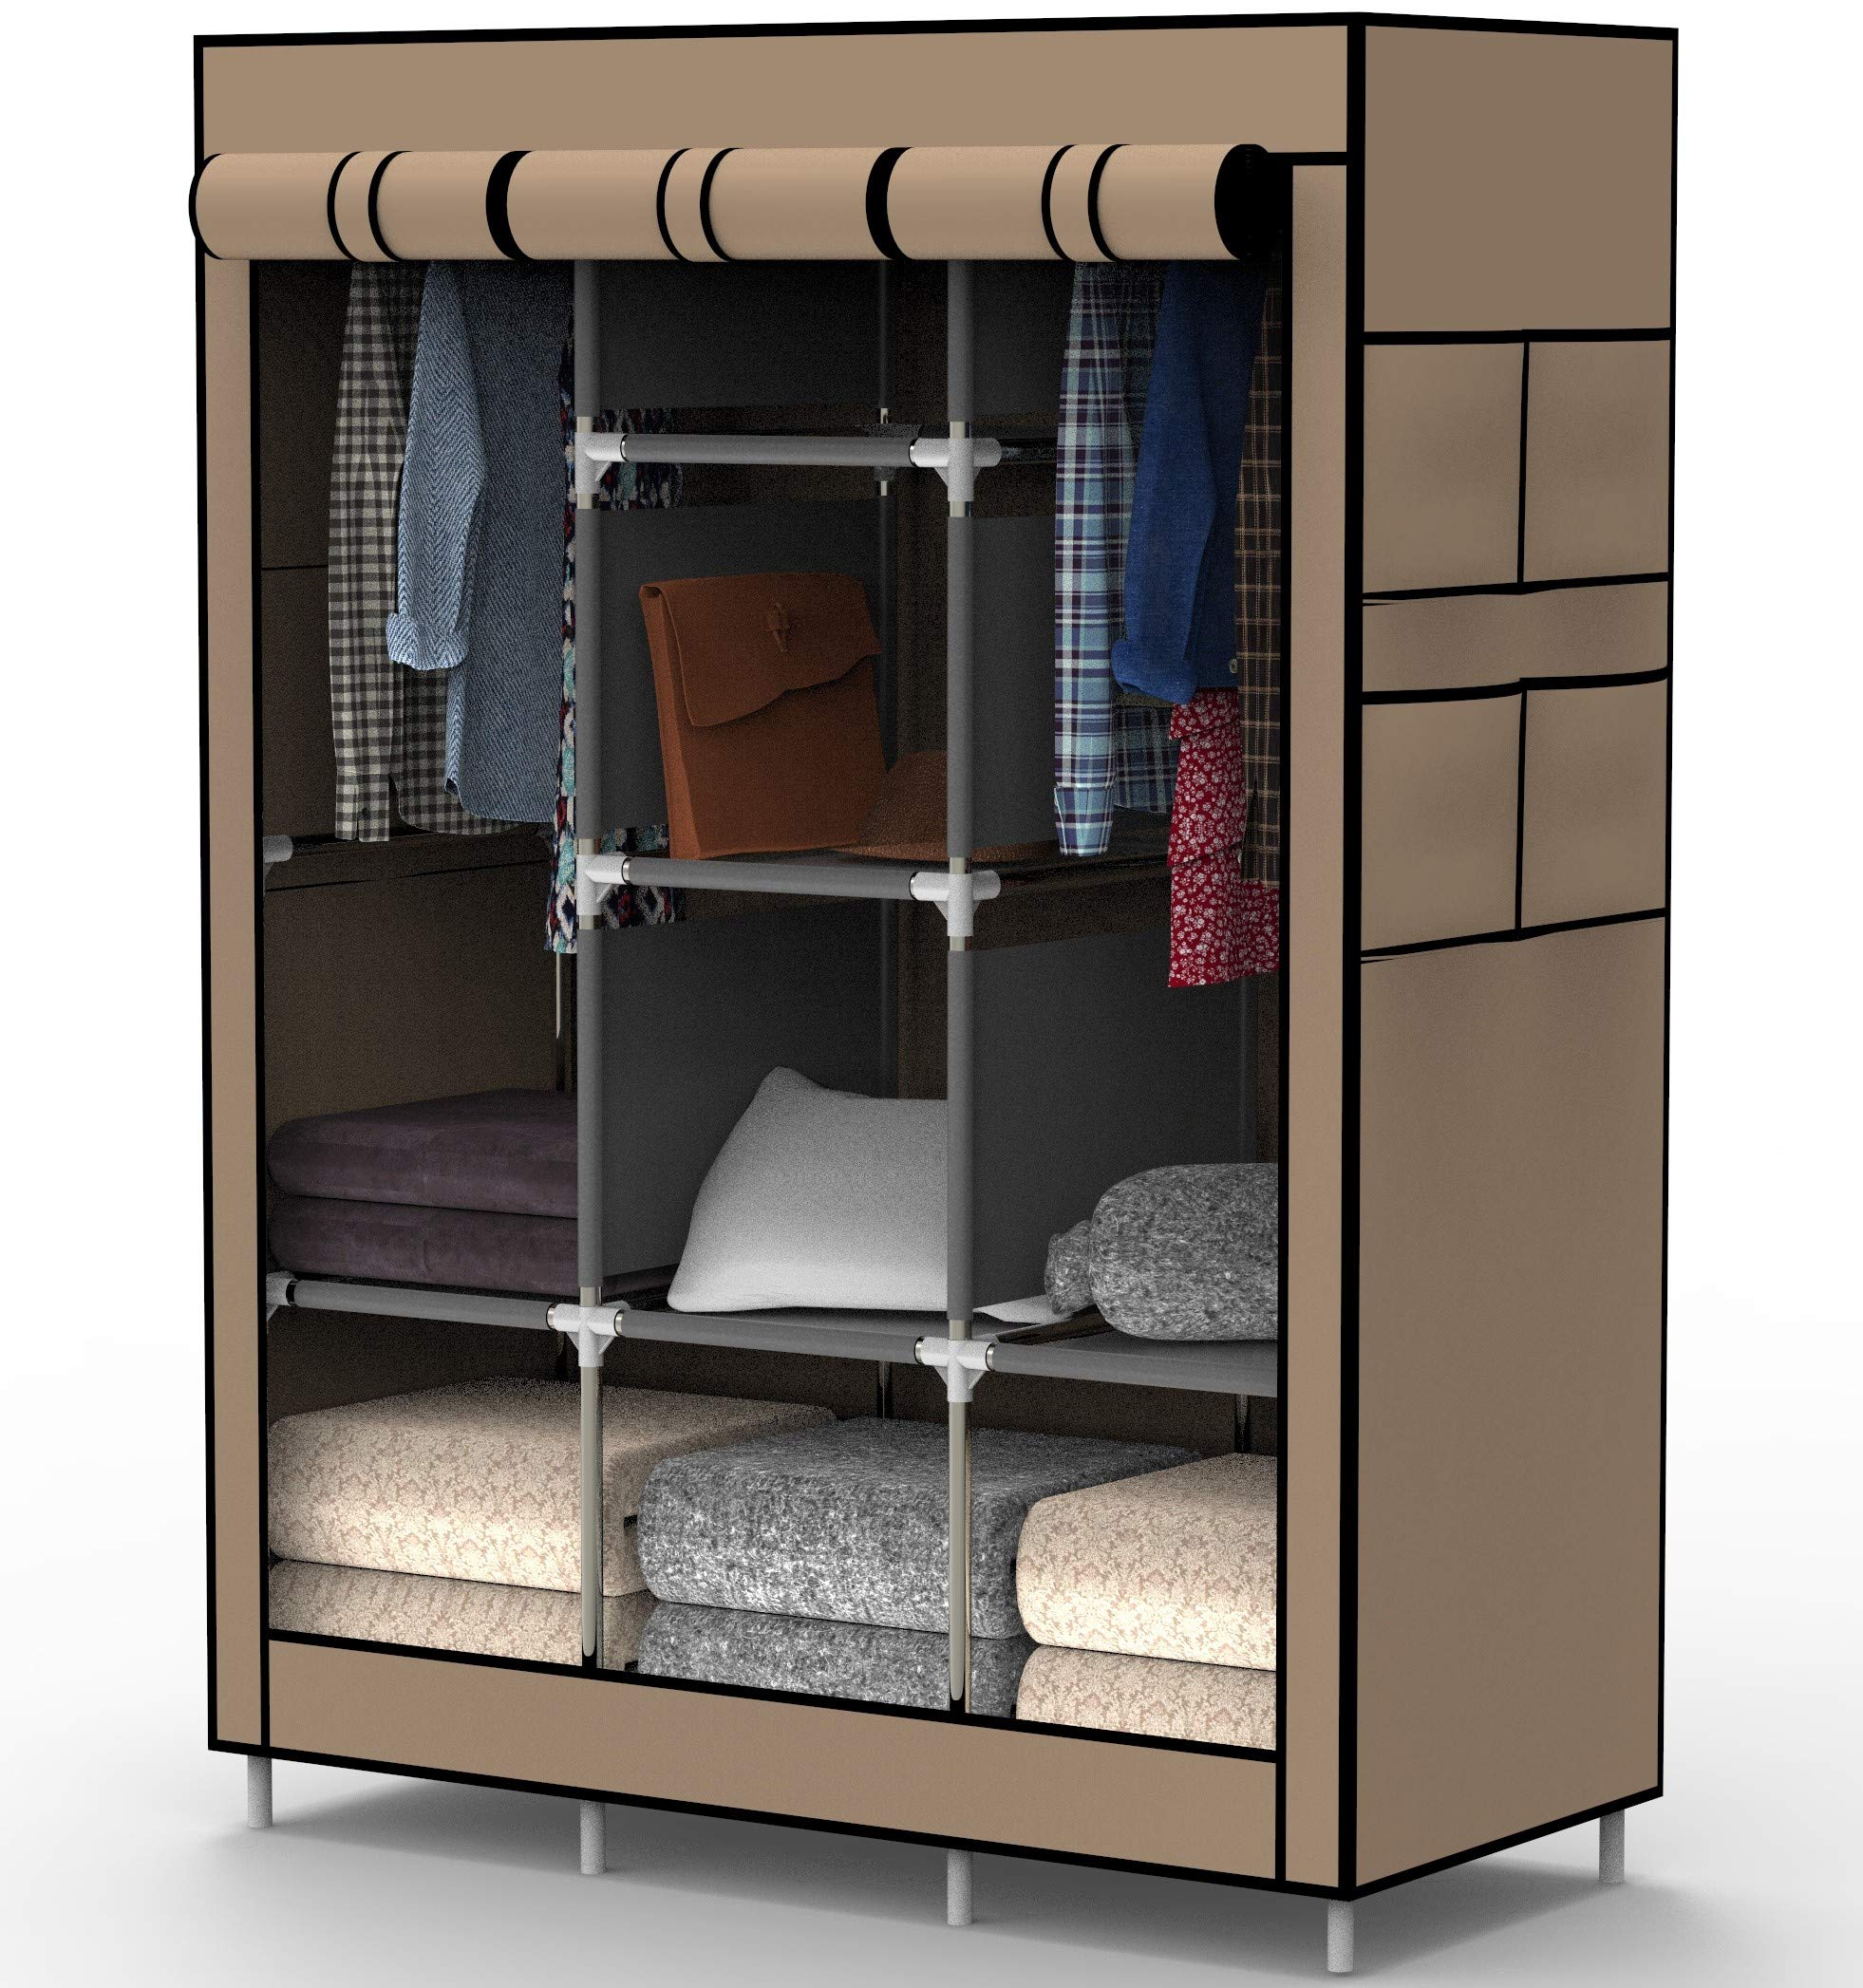 MYOUYA Clothes Closet Wardrobe - Bedroom Standing Closet Organizer for Clothing, Shoes and Accessories, 6 Cubes and 2 Hanging Sections (Brown) by MYOUYA